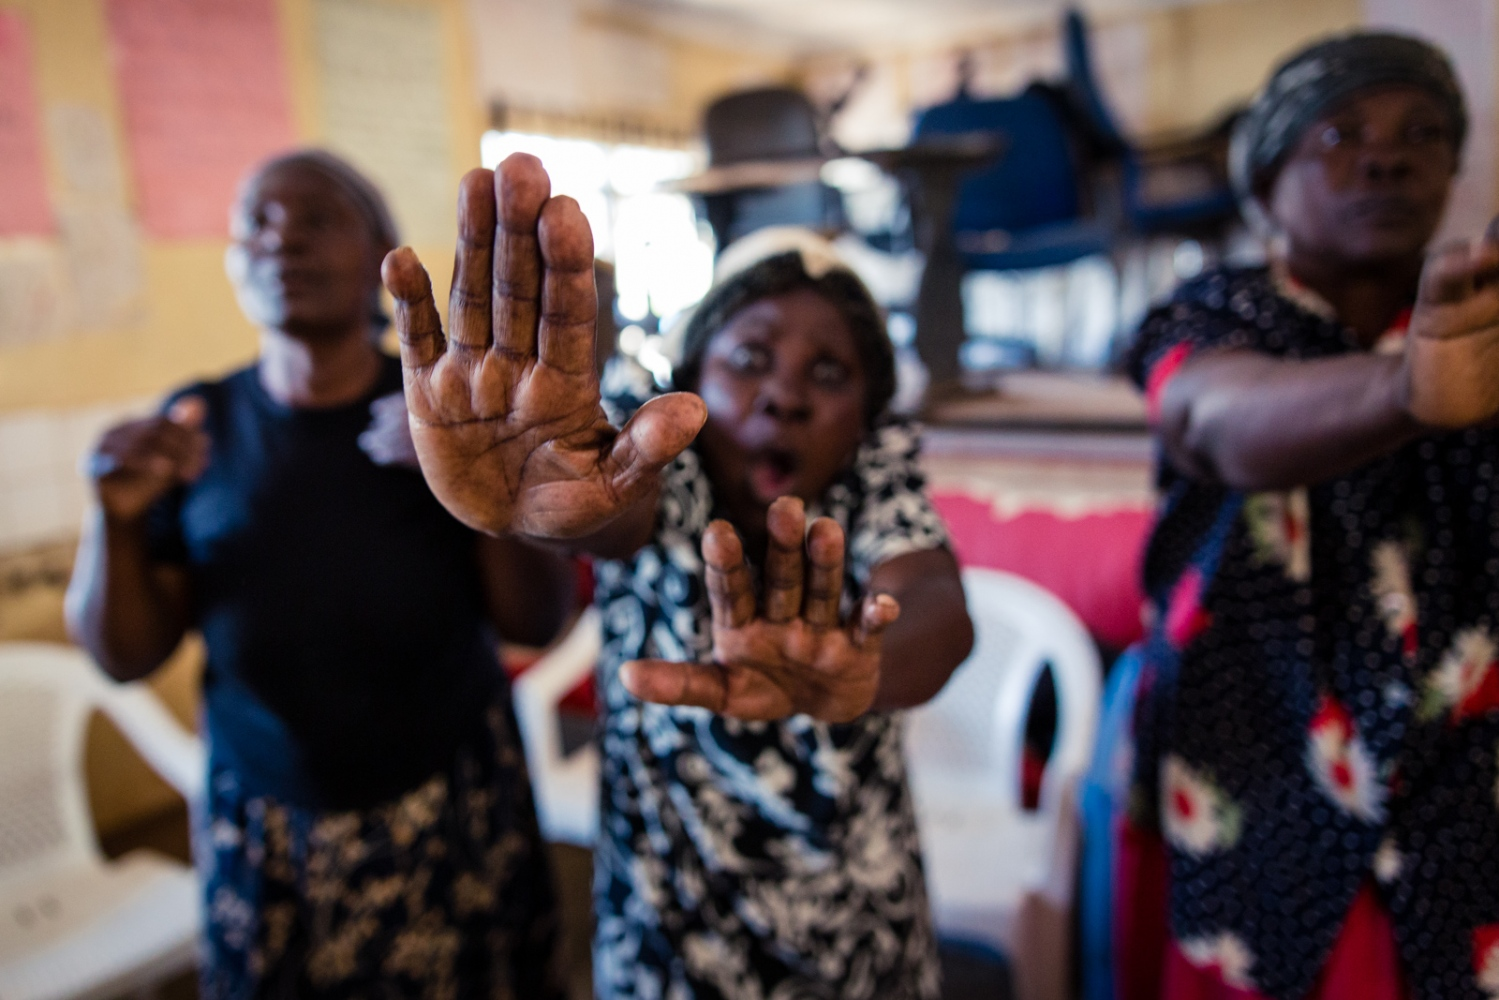 Nairobi, KENYA, March 2, 2017: Flora Masista (C), 64, practices a self-defense technique, whilst screaming 'Nooo!' during a 'Shosho Jikinge' class in the Kibera township. Flora has been training with the other Shoshos for five years and has since applied various tricks she learned: she has escaped potential attackers by lying, tricking and negotiating her way out of dangerous situations.